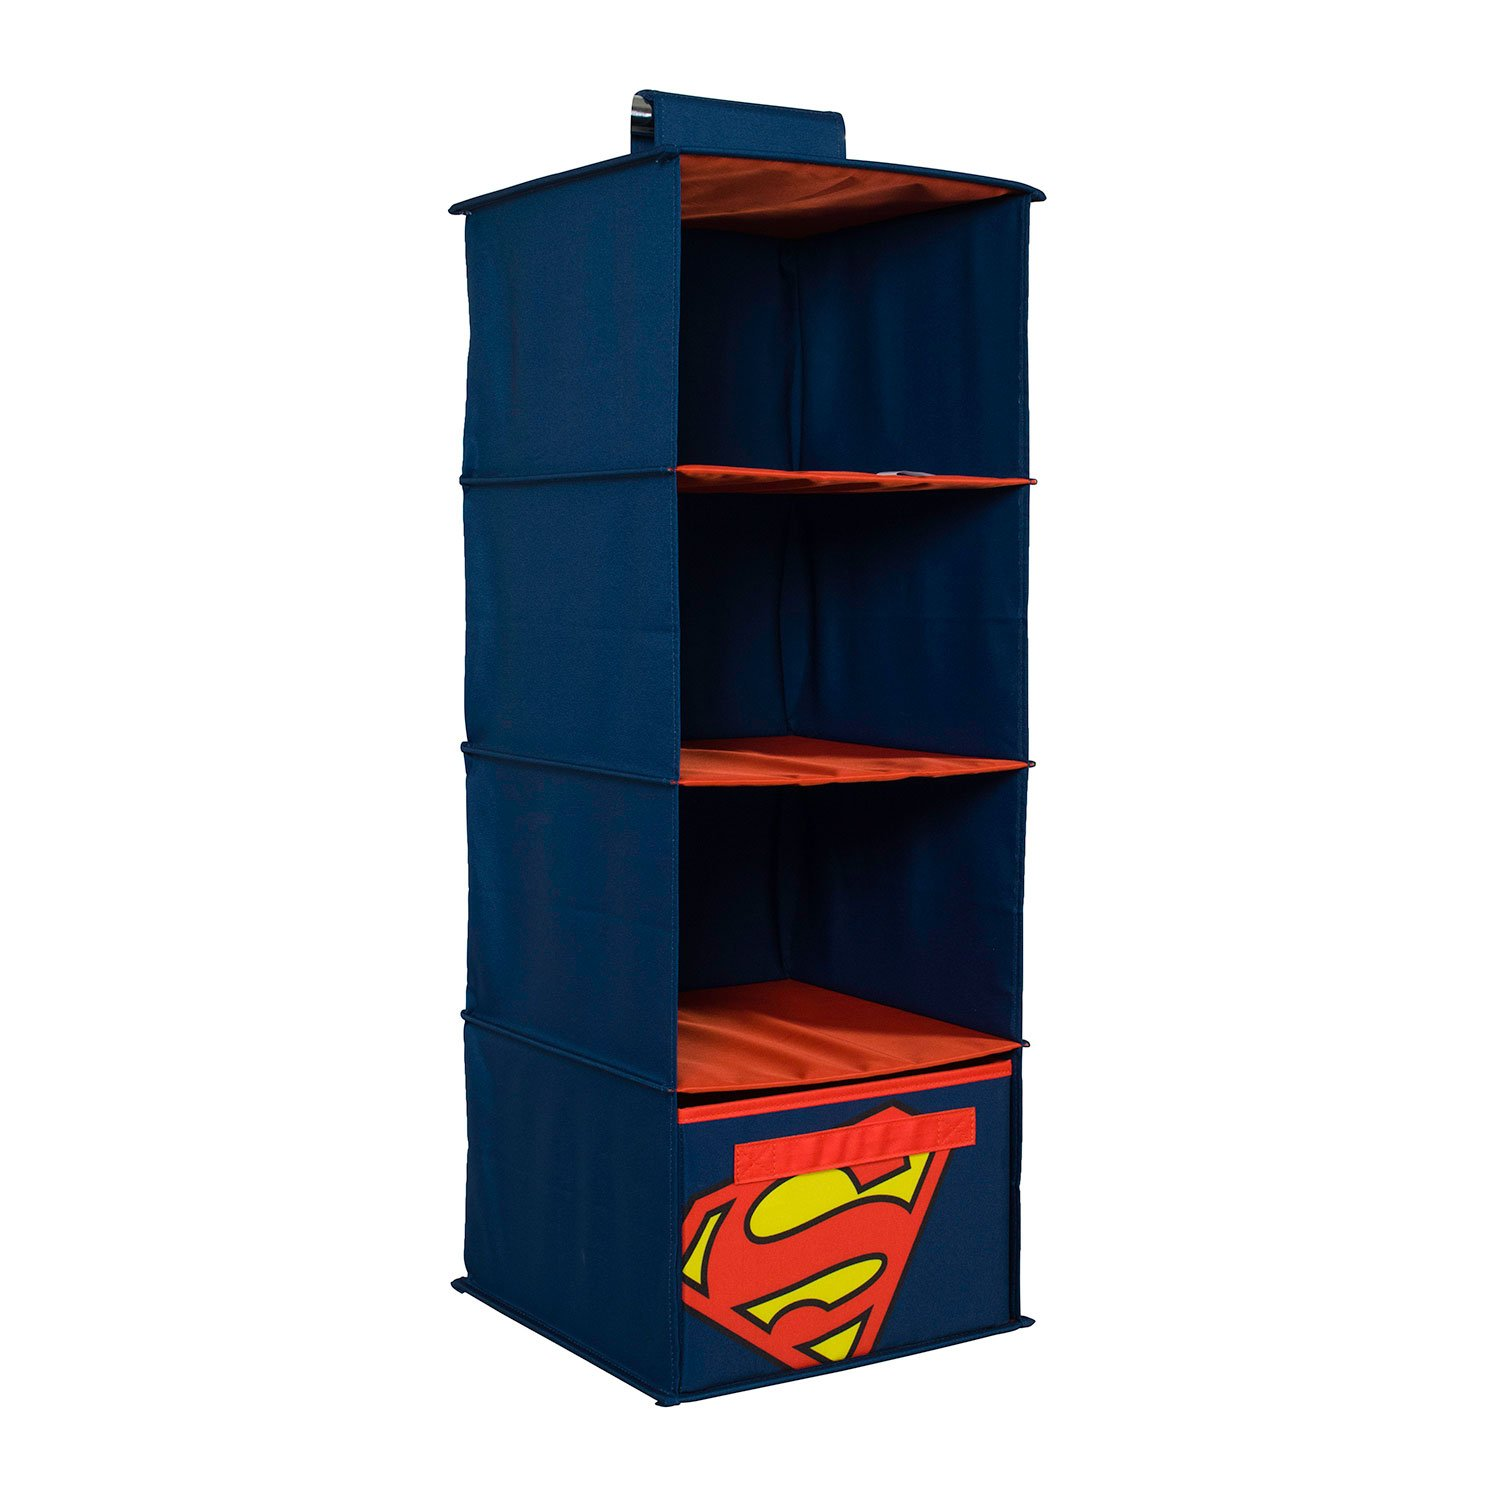 Everything Mary DC Comics Wonder Woman Hanging Closet Organizer | 4 Shelves Clothing Organizer for Closet and Bedroom Storage | DC Comics Towel Accessory Storage, Collapsible Hanging Organizer